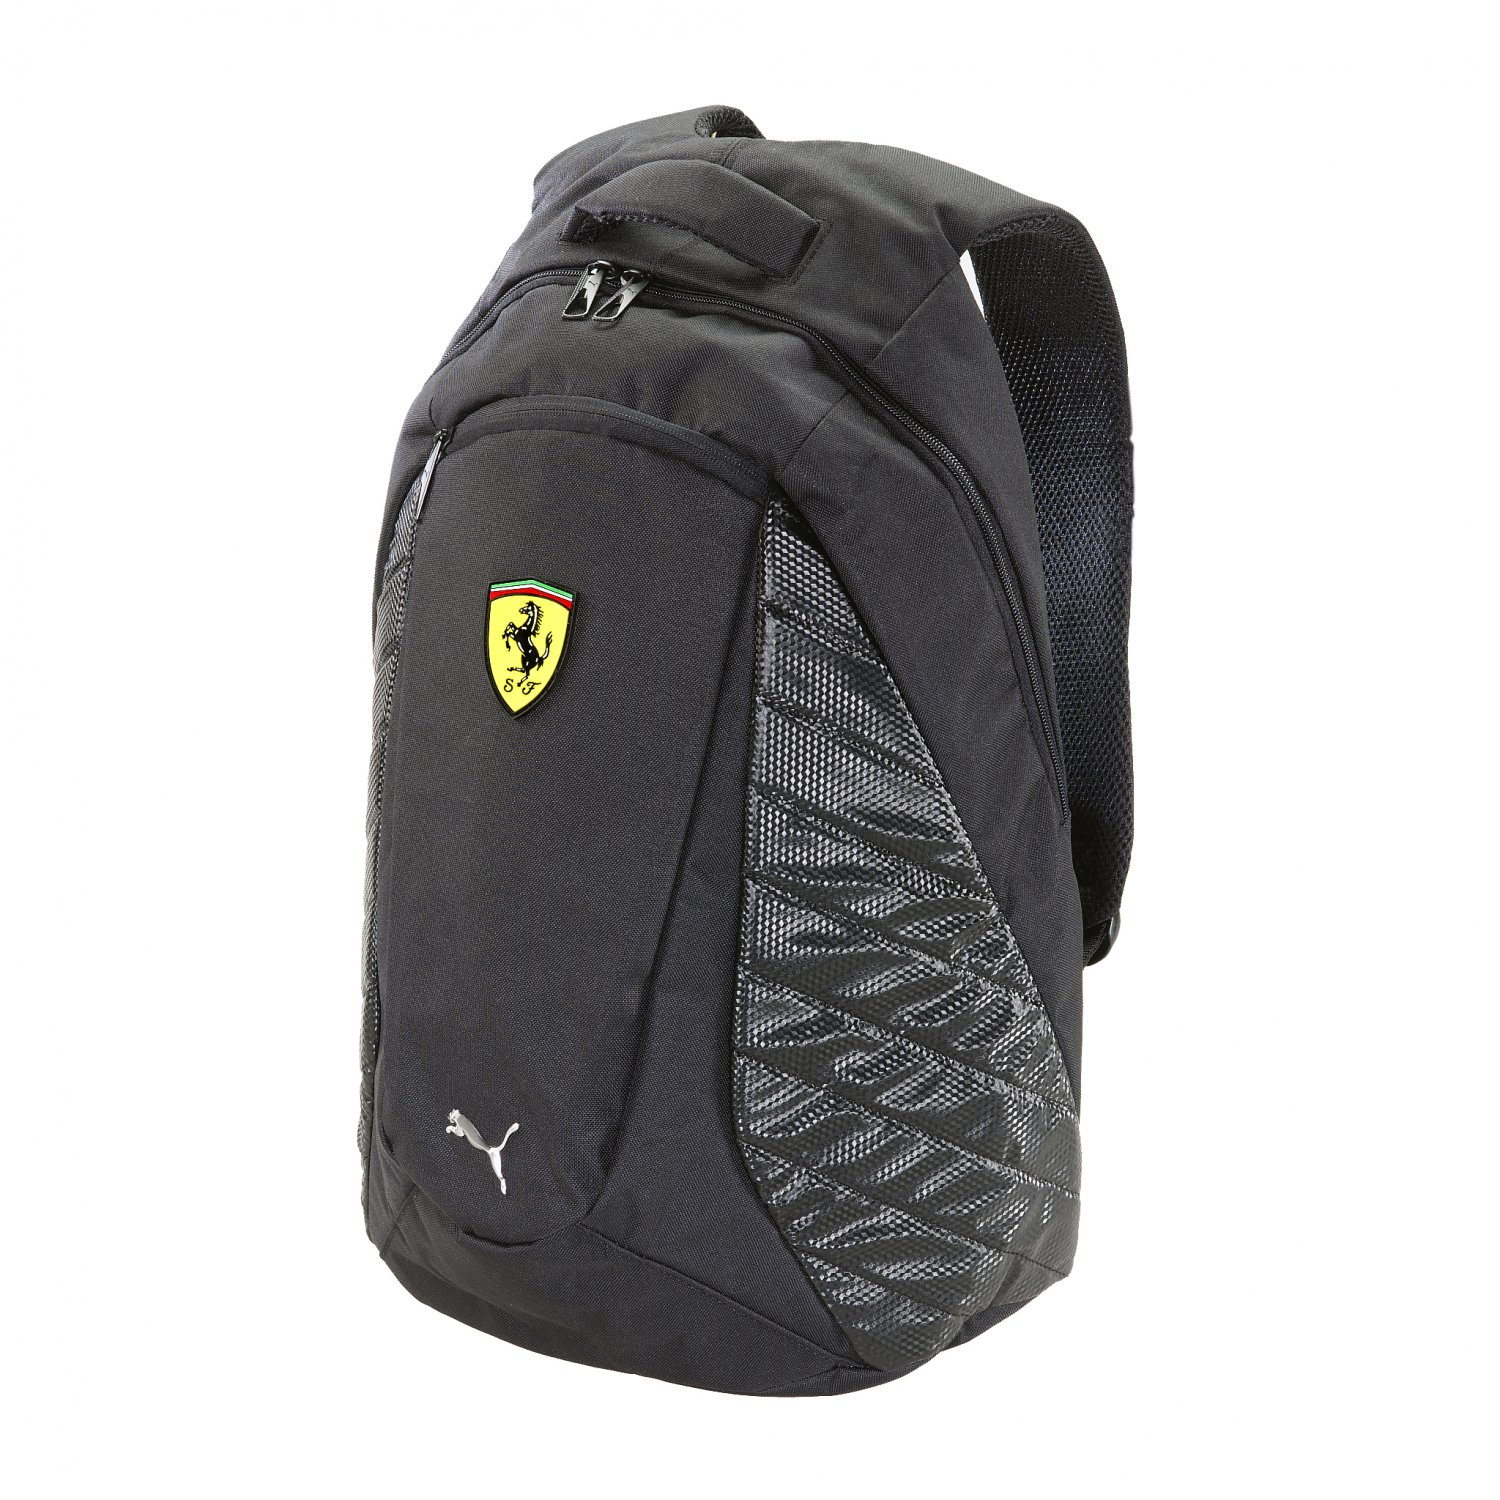 Puma FERRARI Backpack With Laptop Compartment Black